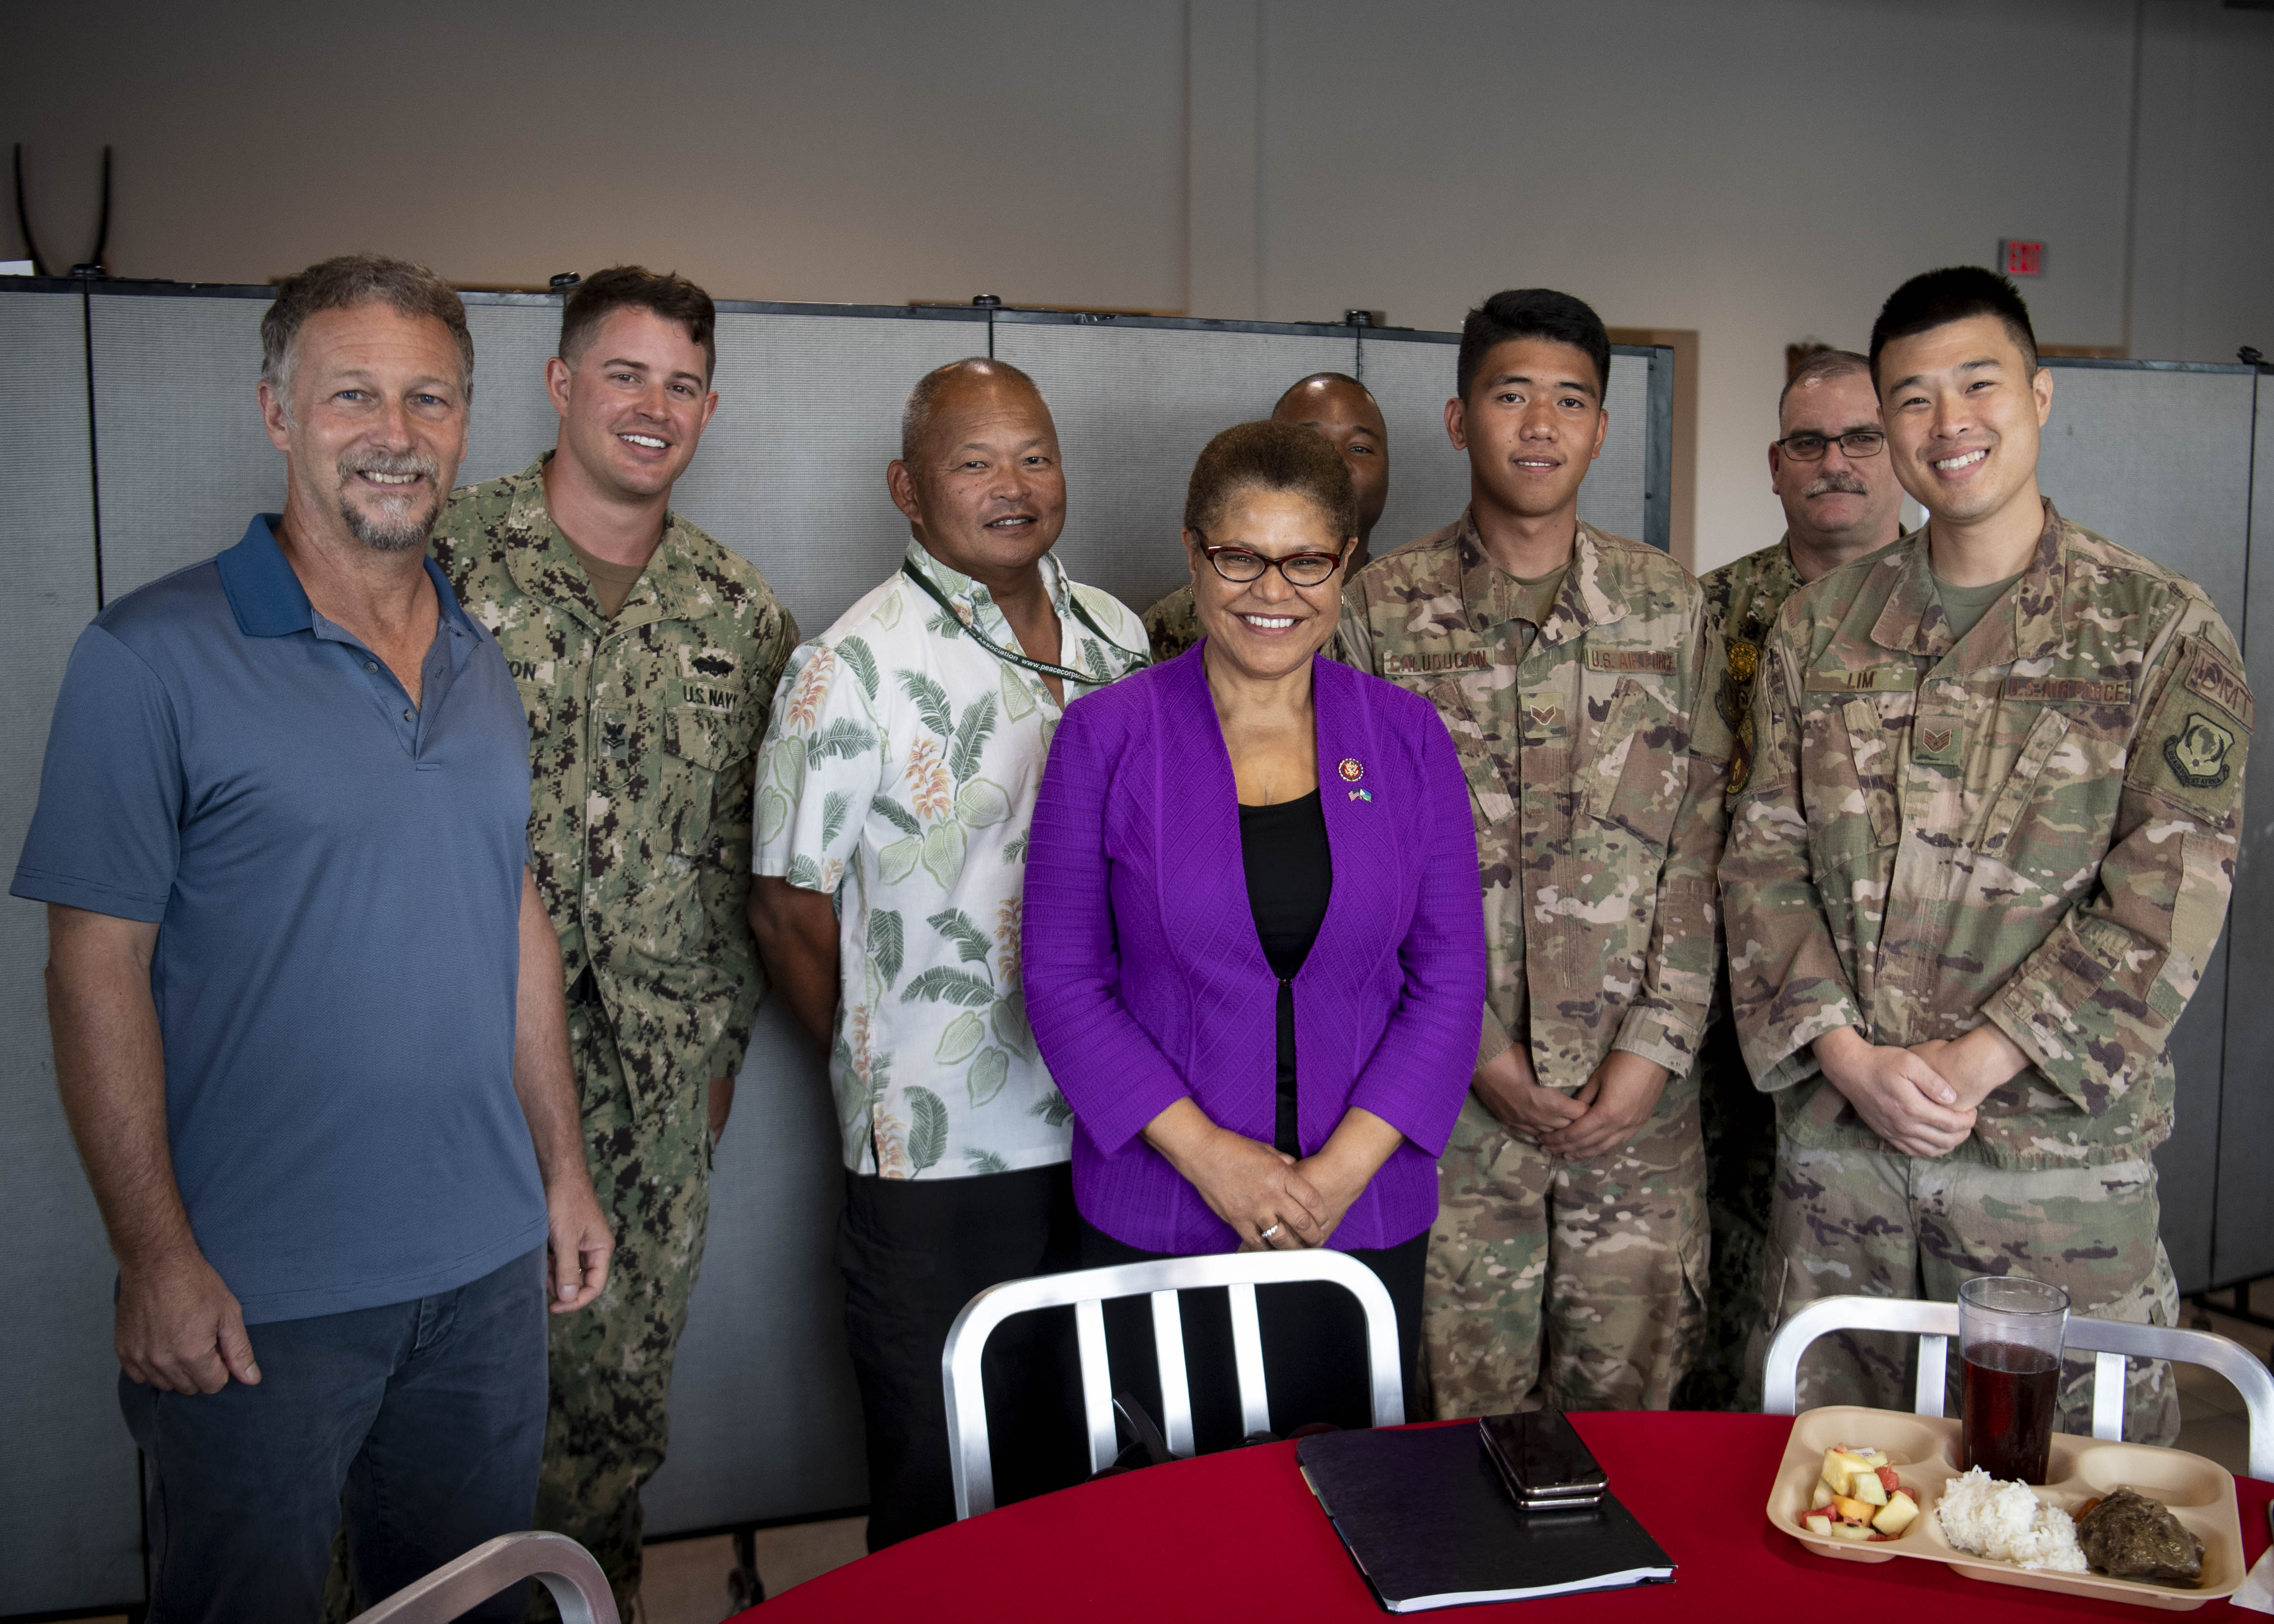 Rep. Karen Bass (D-Calif.) poses for a photo with service members from California at Camp Lemonnier, Djibouti, Oct. 2, 2019. Bass visited Djibouti to promote U.S. Government and host nation partnerships in the region. (U.S. Air Force photo by Staff Sgt. J.D. Strong II)